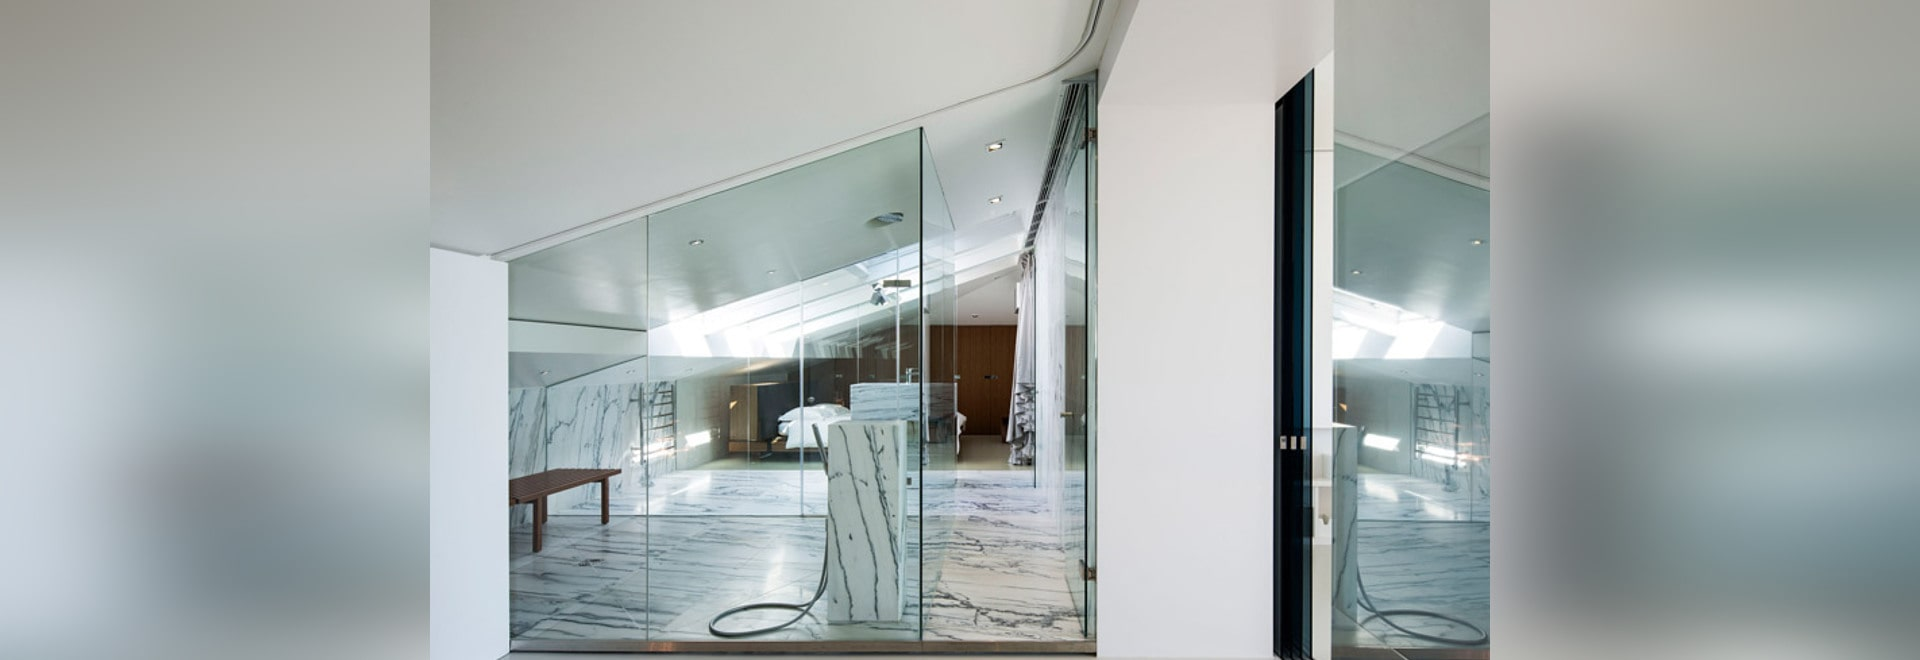 Lisbon apartment extended by Camarim Arquitectos to include an attic steam room